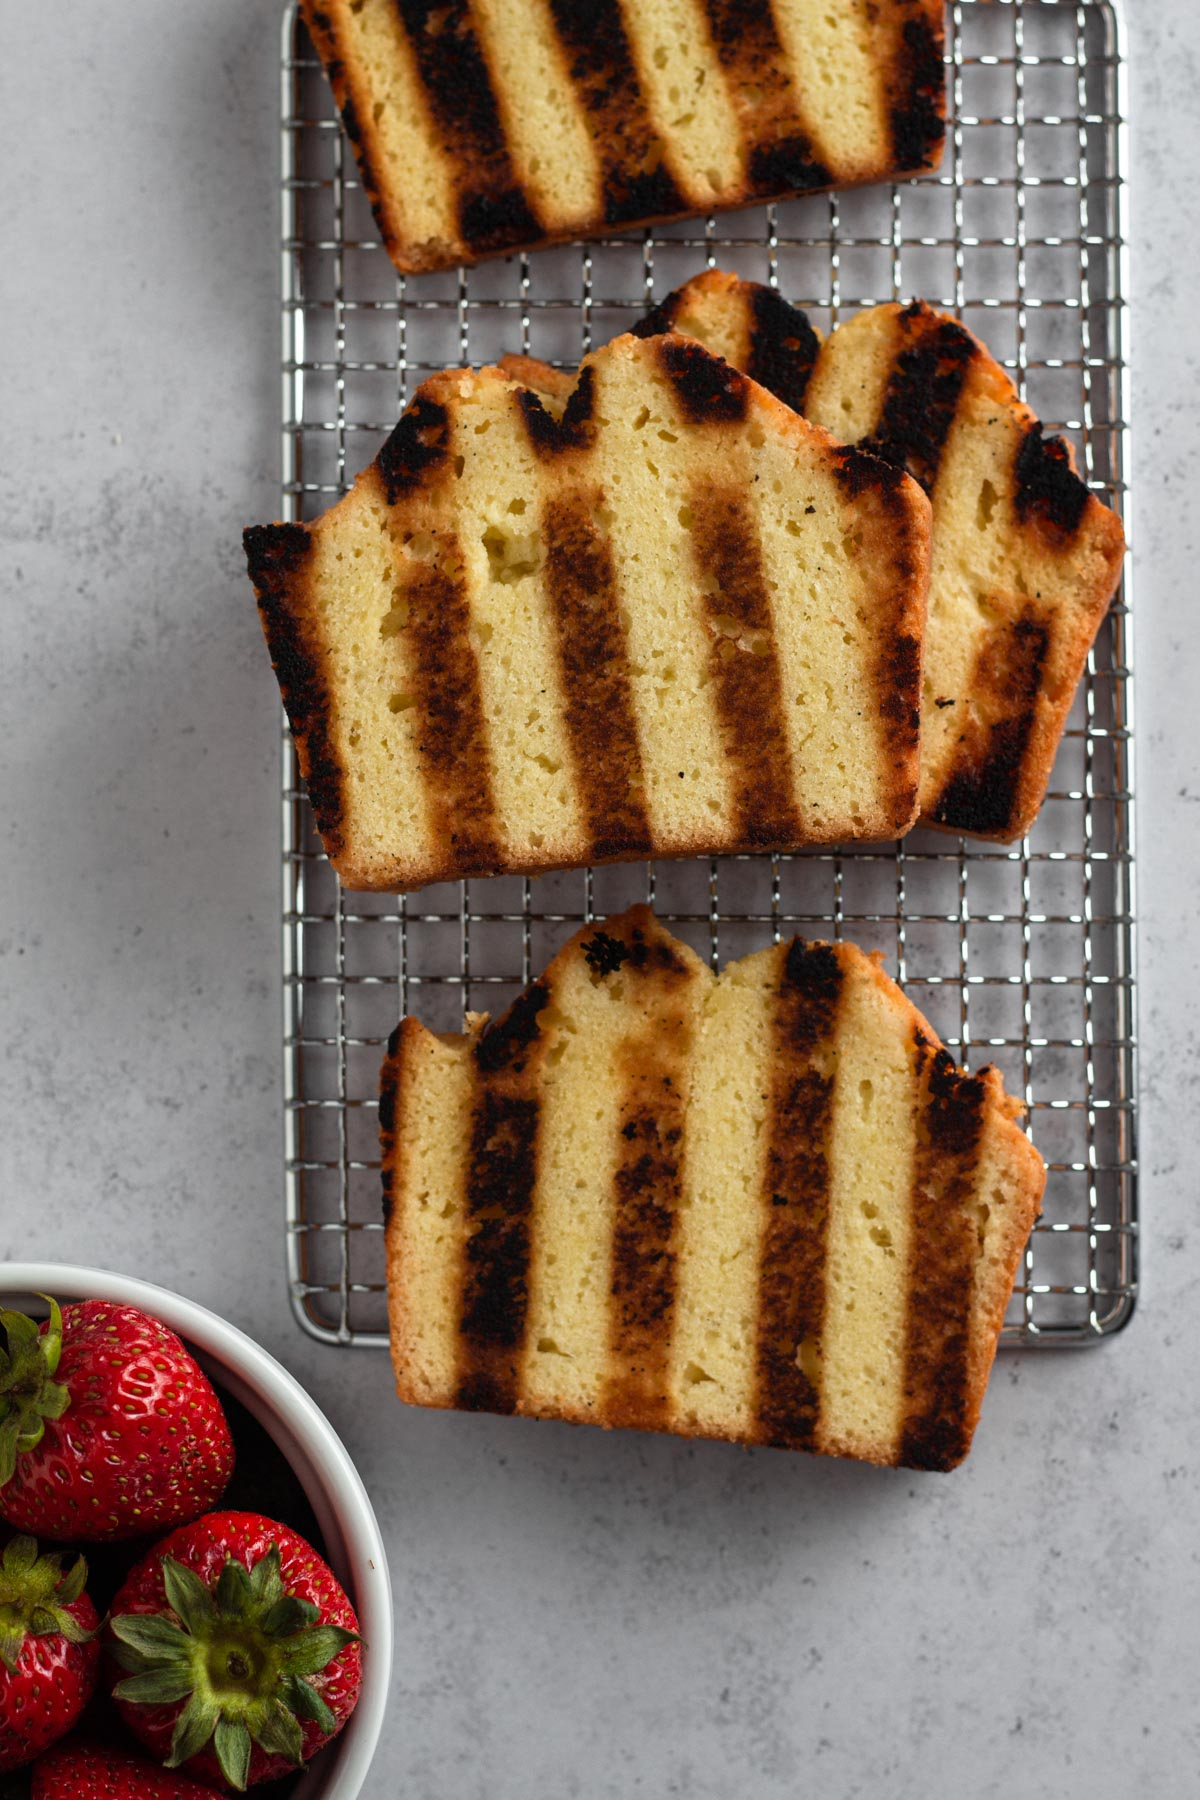 overhead view of grilled pound cake on a cooling rack with a bowl of strawberries